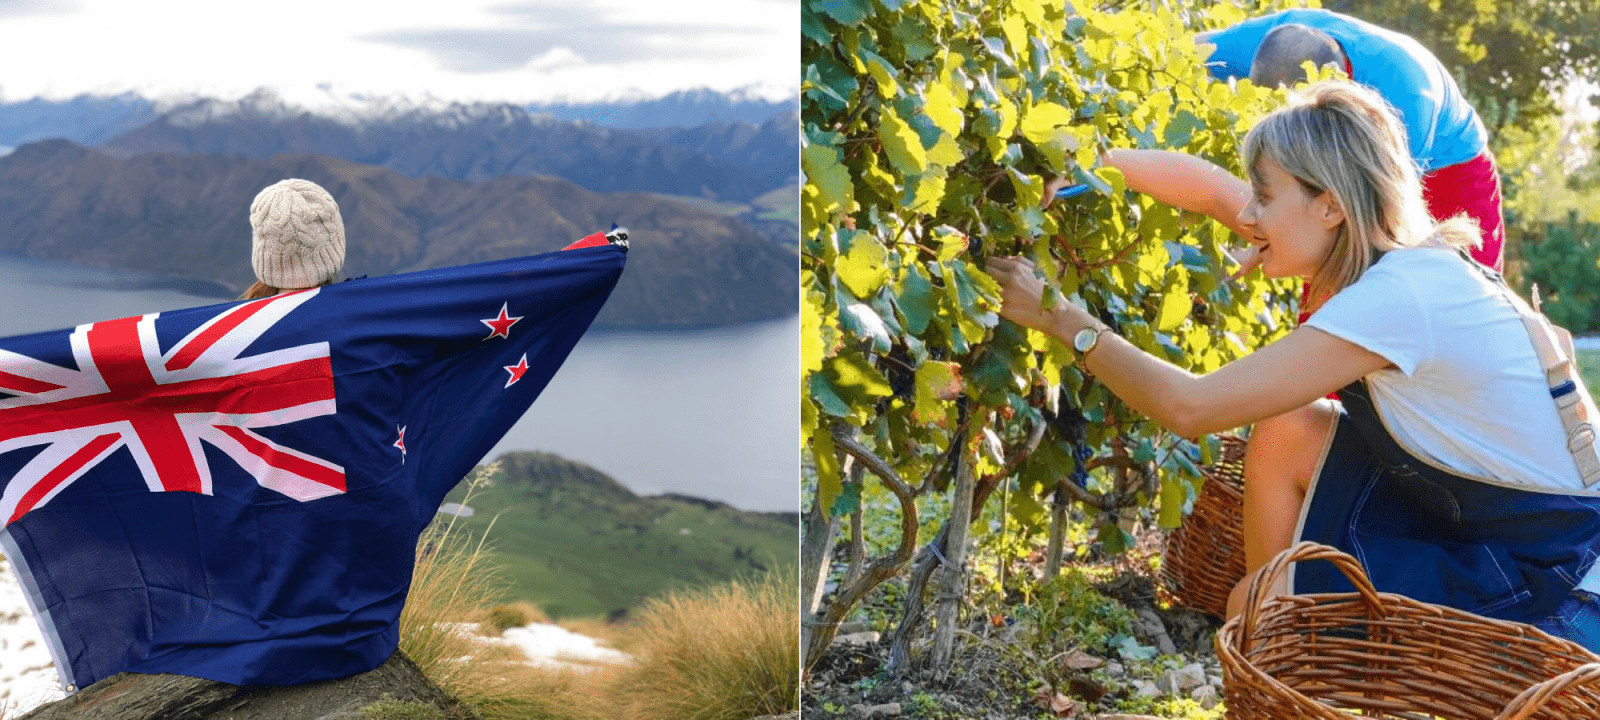 New Zealand Welcomes M'sians to Apply For Working Holiday Visa Starting Jan 23rd